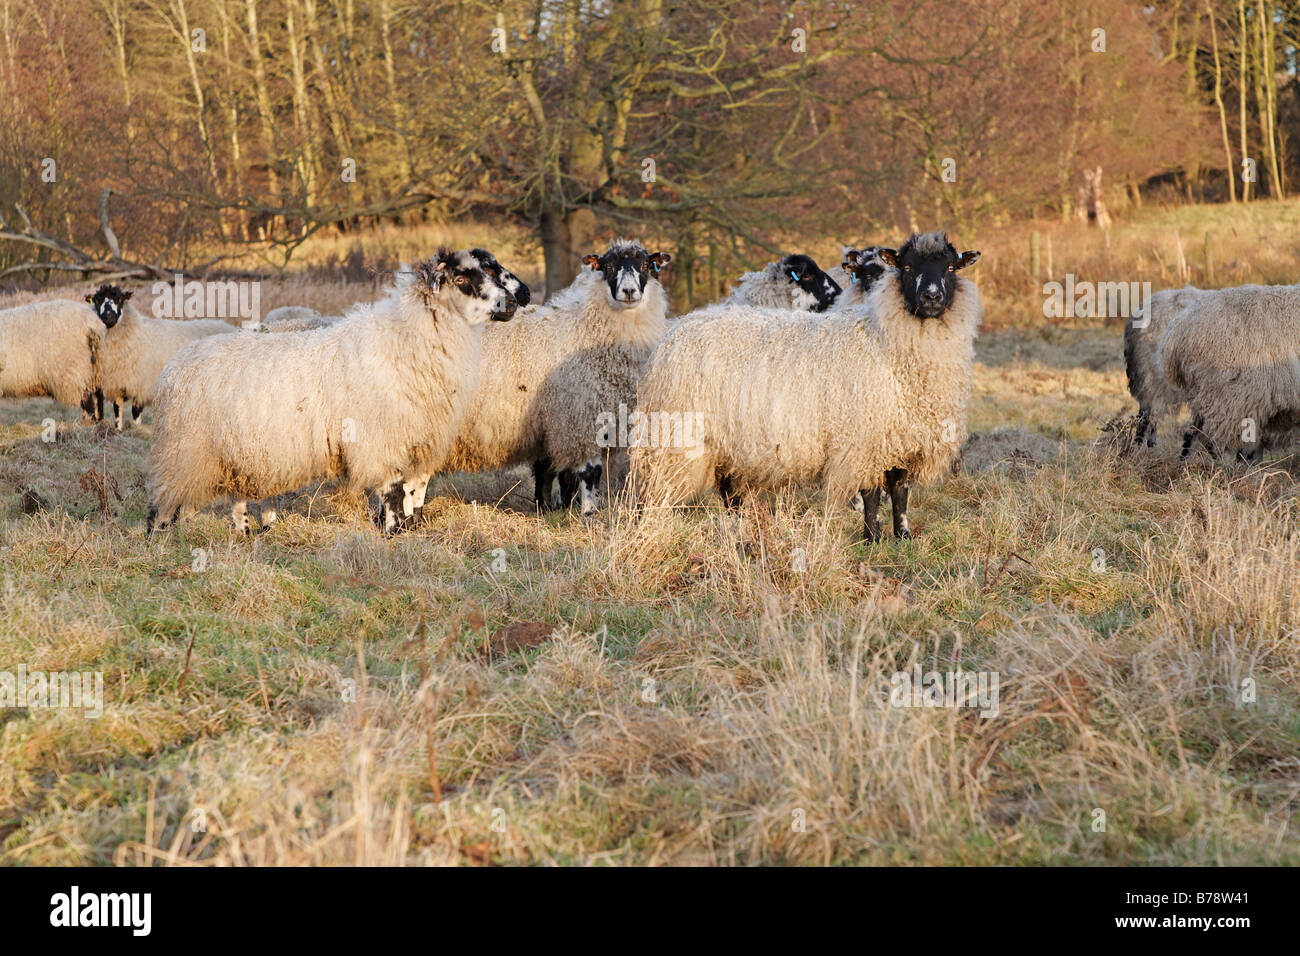 Sheep grazing on rough winter pasture - Stock Image